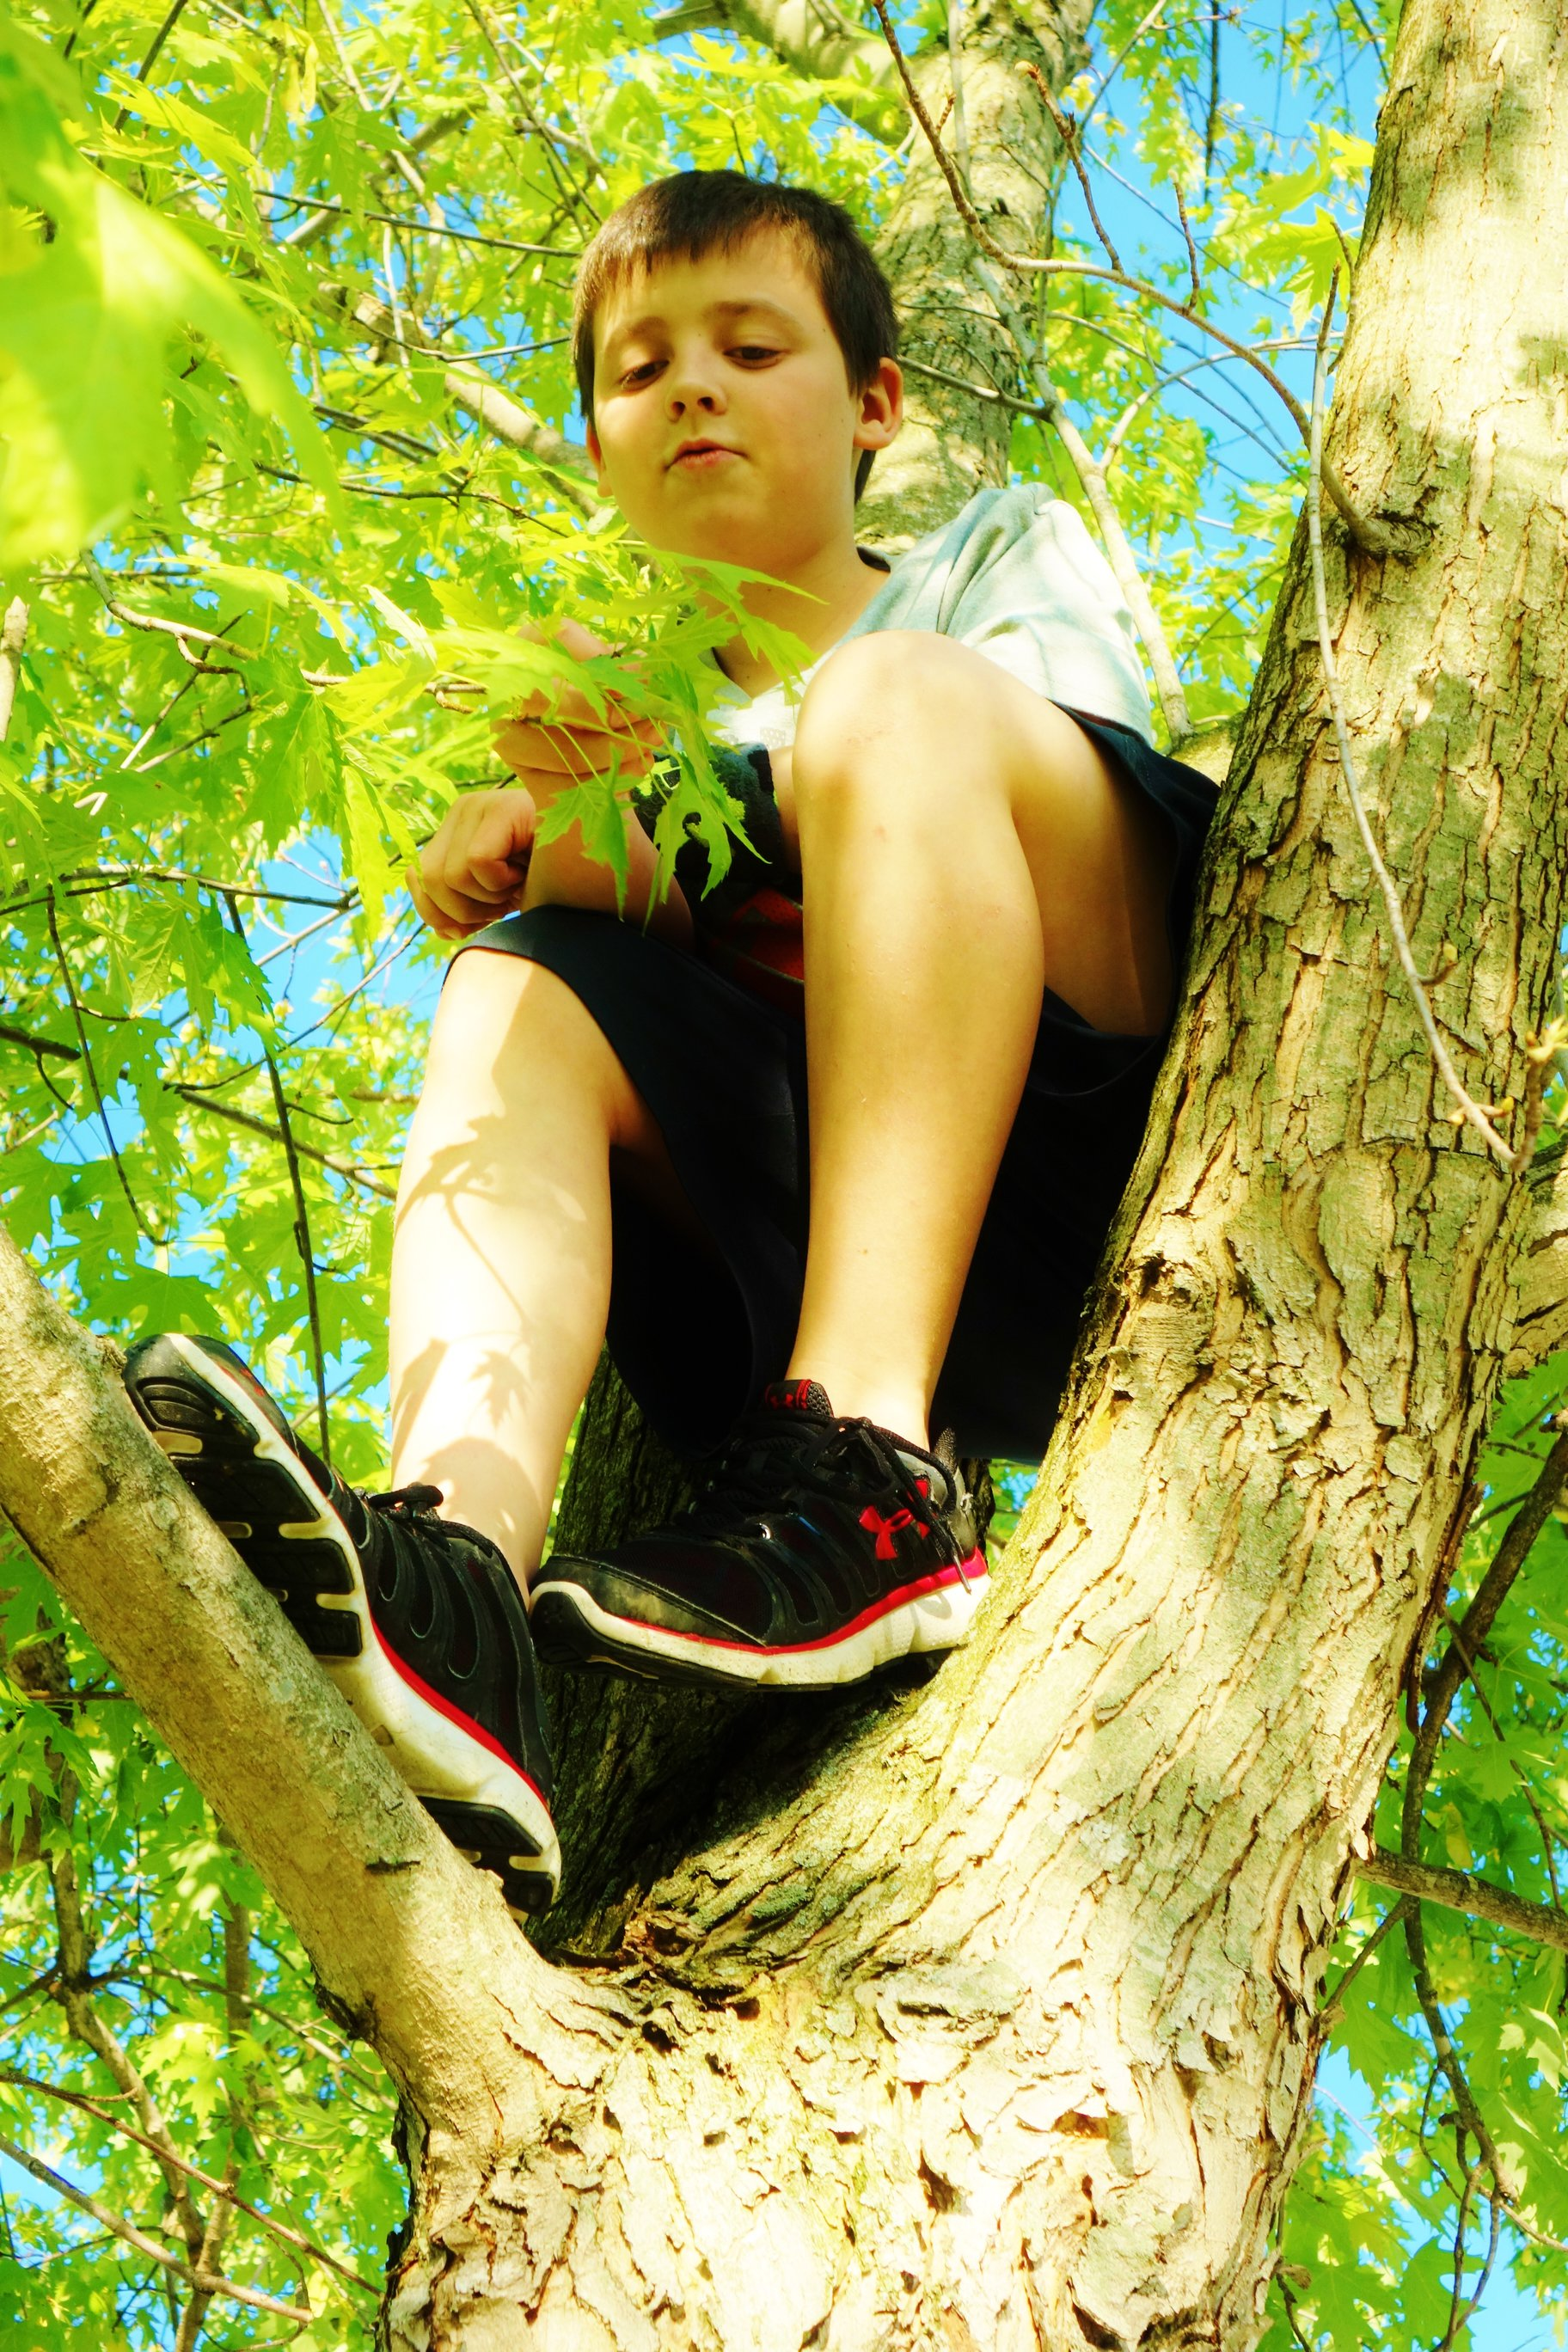 boy_in_tree